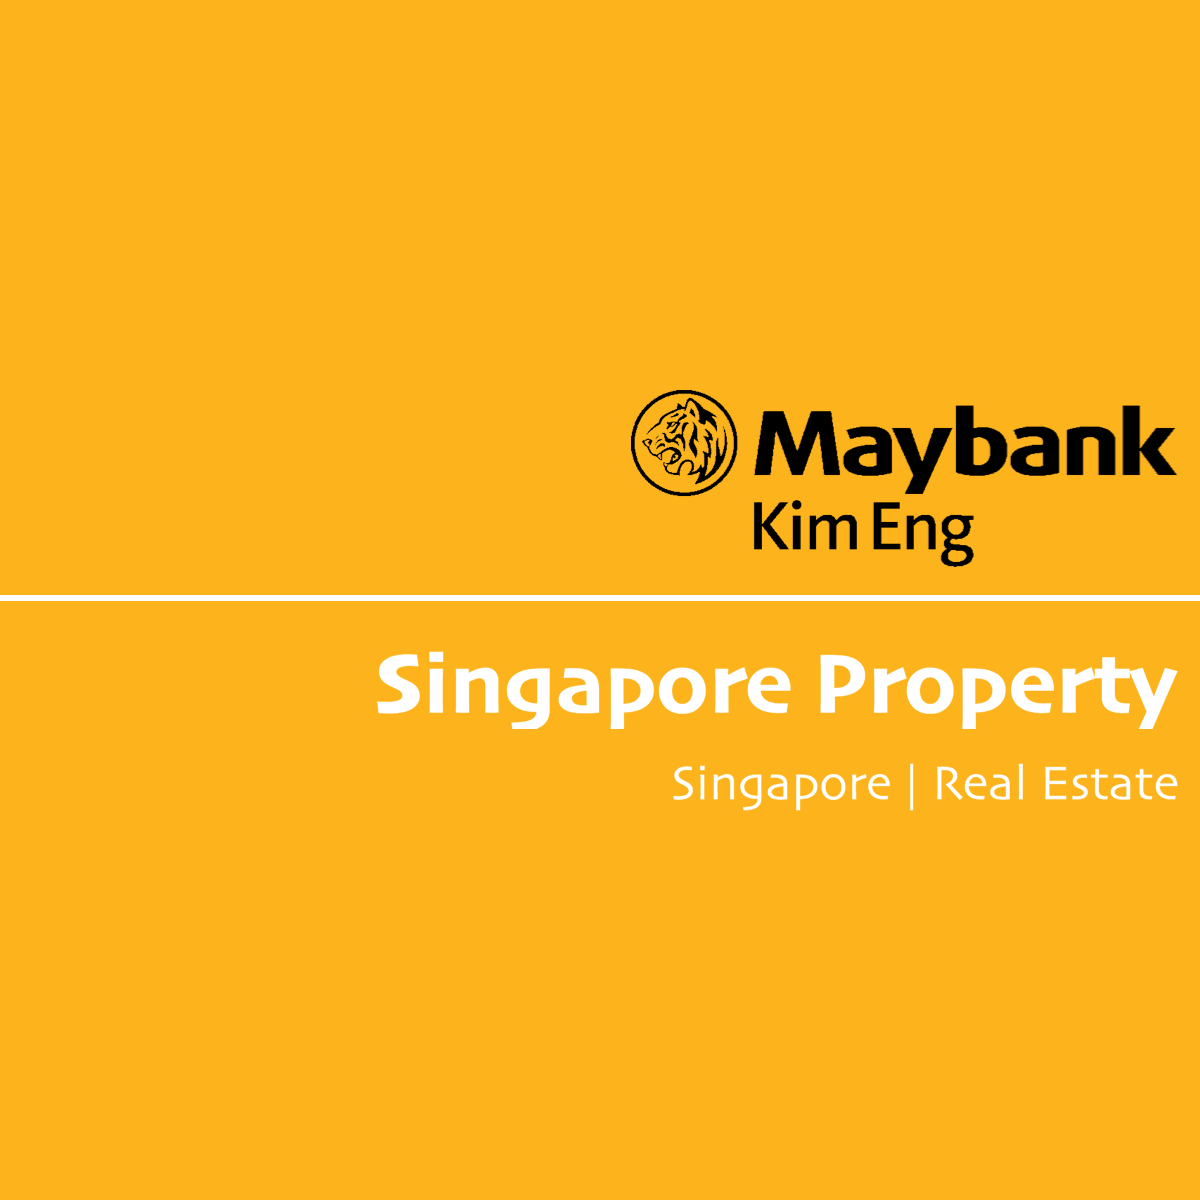 Singapore Property - Maybank Kim Eng 2017-06-15: Developer Sales On Track